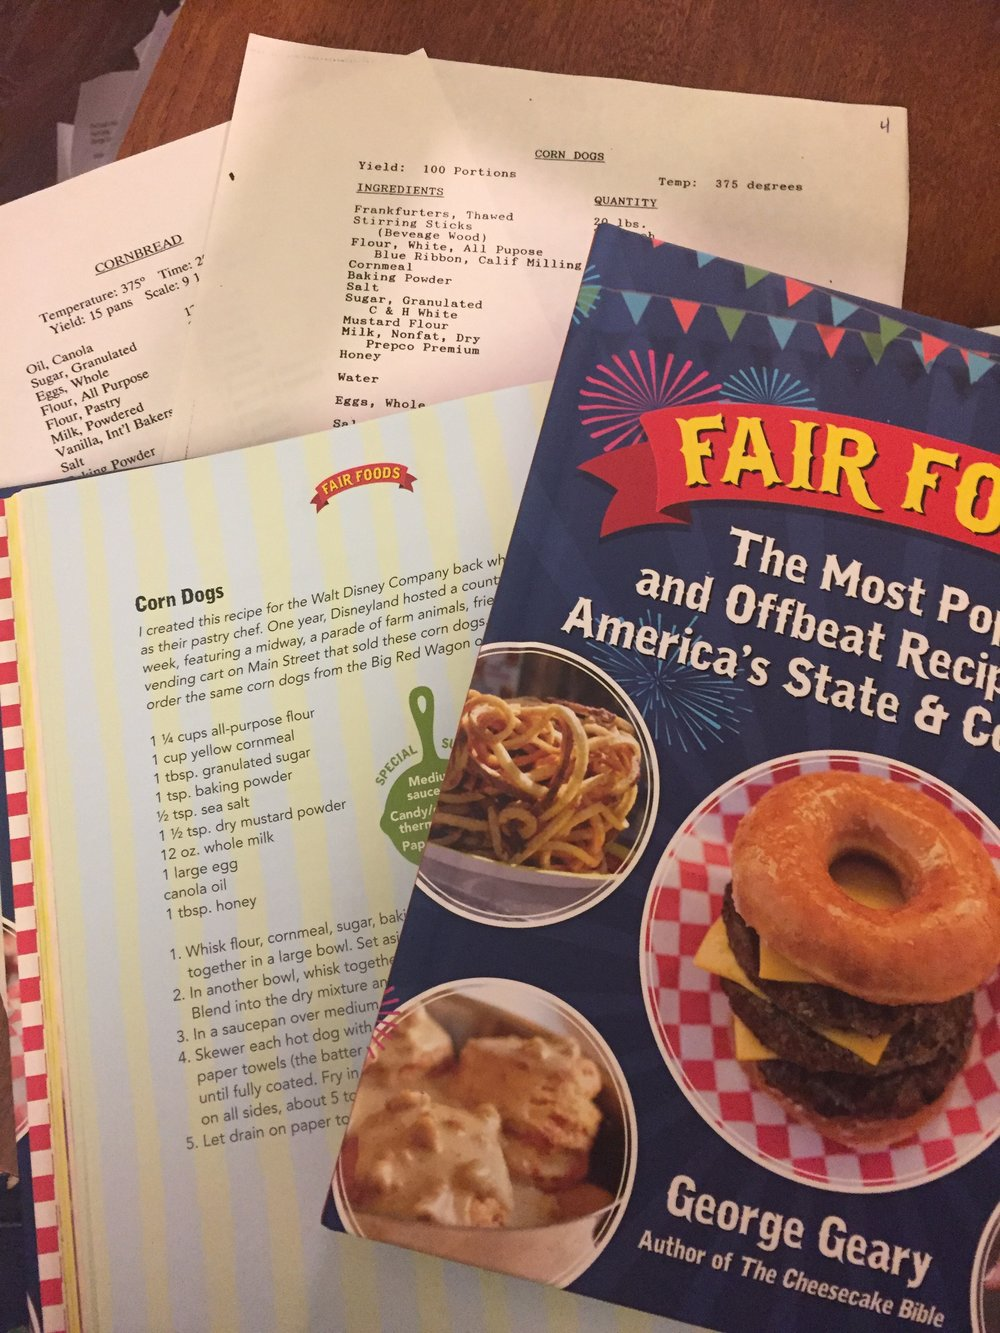 My Original Disney Formula's of Big Thunder Ranch Cornbread, Little Red Wagon Corn Dogs and my Newest Cookbook: Fair Foods